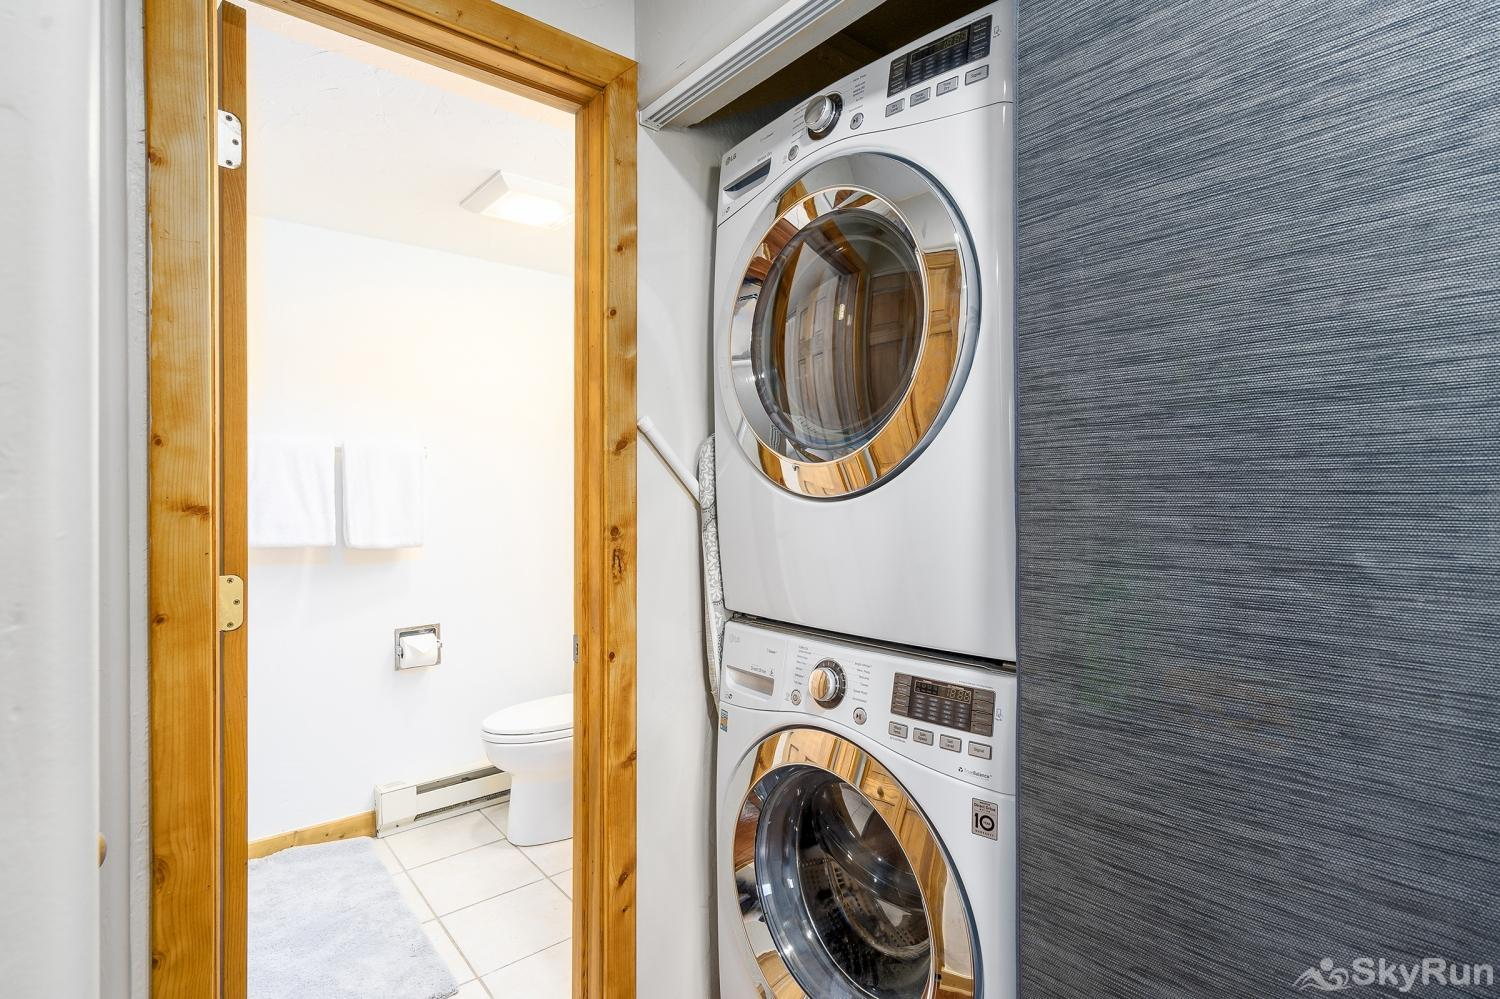 Shadow Run C205 You will have access to this new washer/dryer combo, located right in the condo!